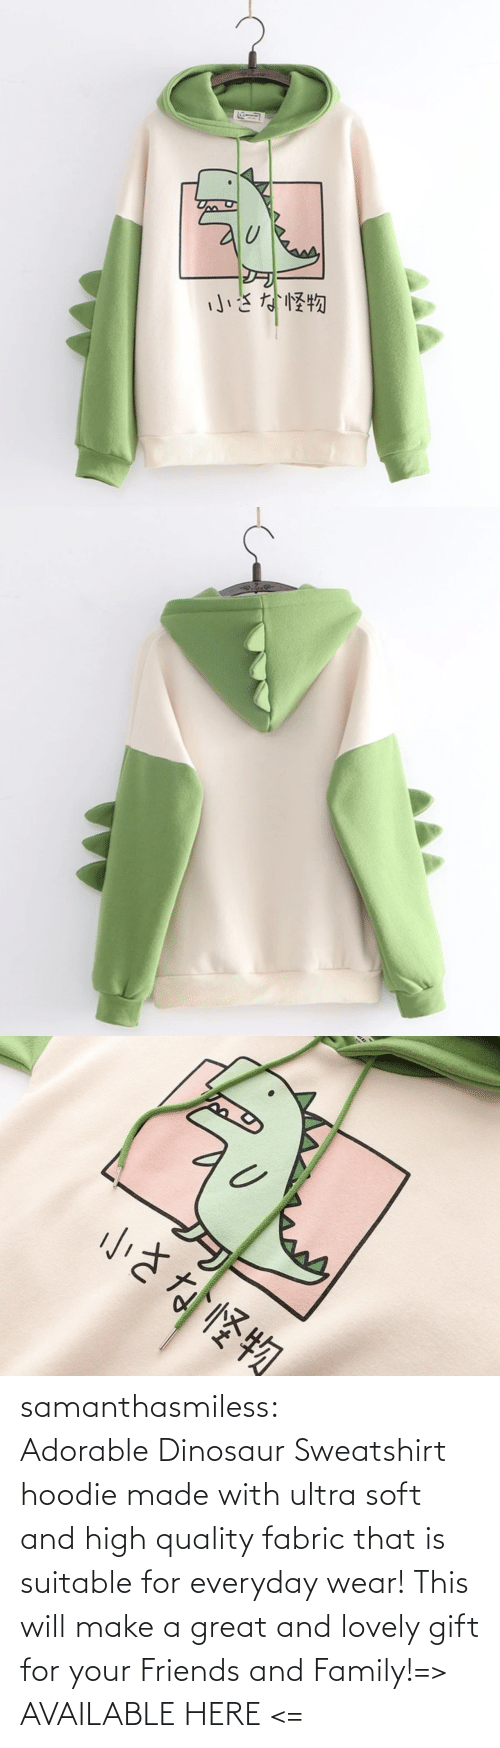 products: samanthasmiless:  Adorable Dinosaur Sweatshirt hoodie made with ultra soft and high quality fabric that is suitable for everyday wear! This will make a great and lovely gift for your Friends and Family!=> AVAILABLE HERE <=